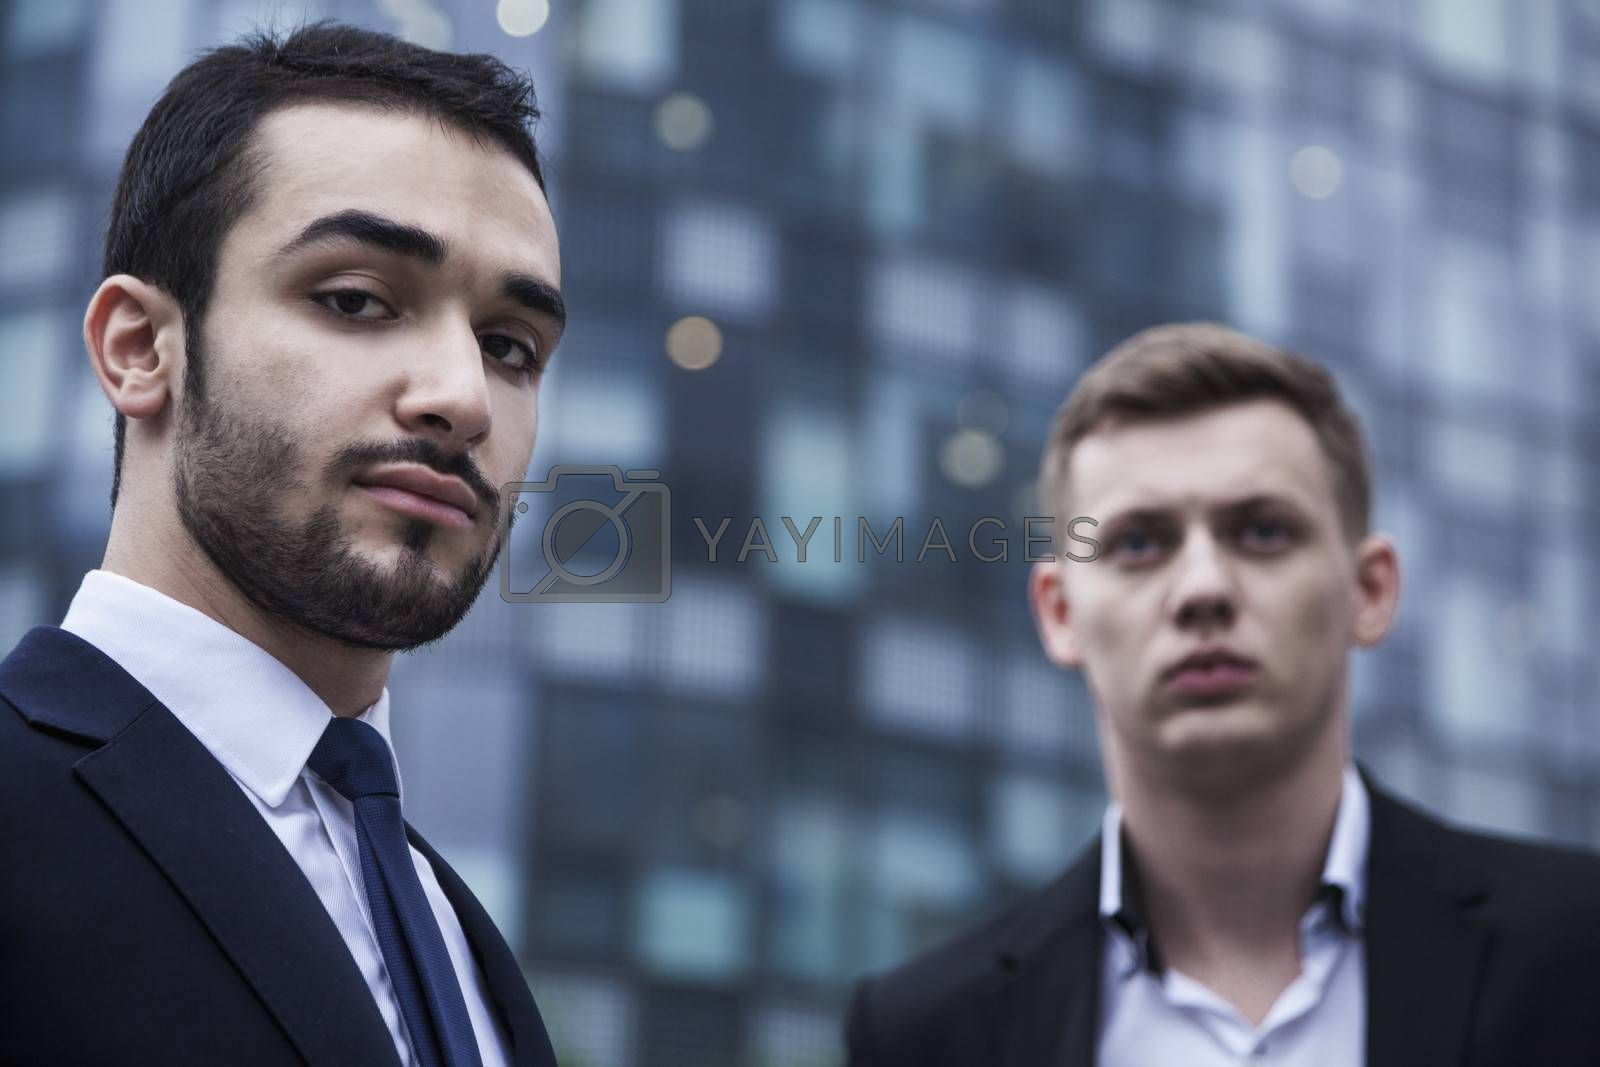 Portrait of two serious young businessmen looking at the camera, outdoors, business district by XiXinXing